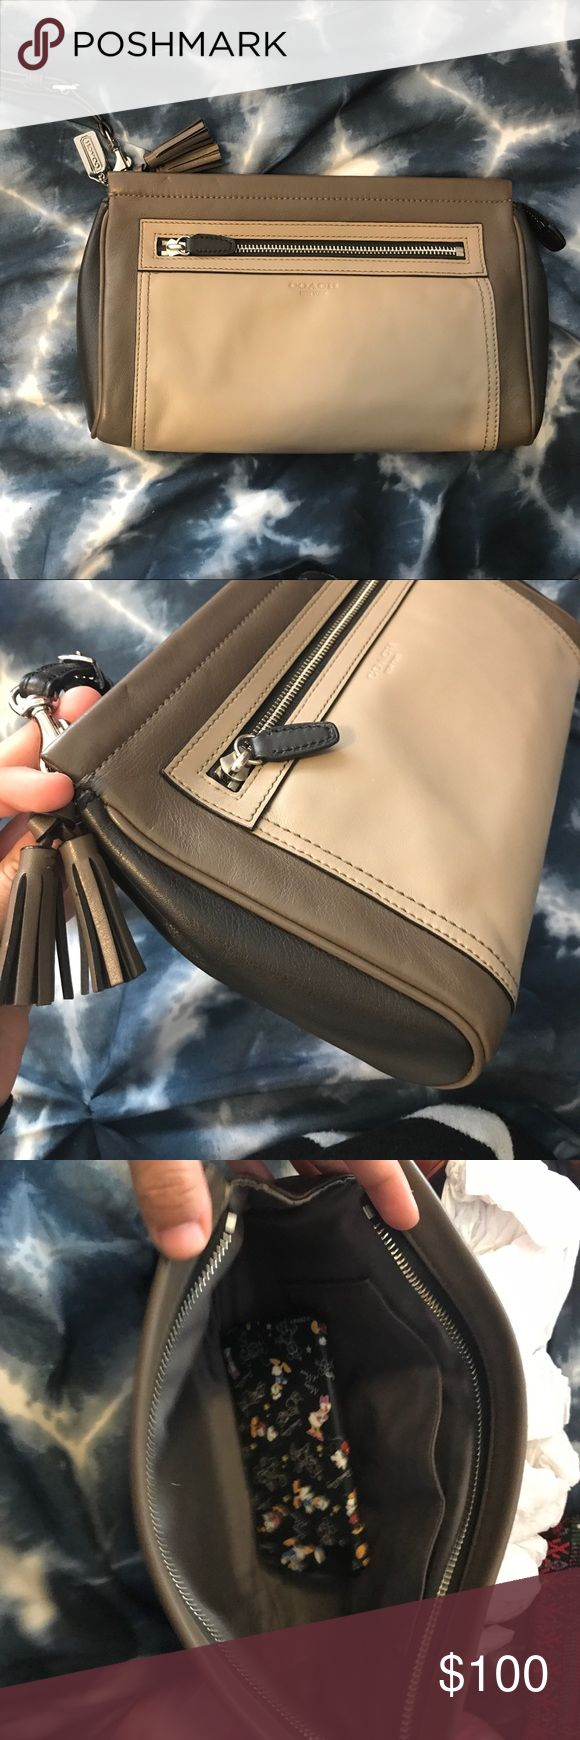 Coach legacy large clutch This is a large clutch from coach legacy collection. It's 3 colors. Black, dark taupe, and light taupe. In in like new cond. last picture shows an iPhone 7 case inside for size reference. It holds a lot. Coach Bags Clutches & Wristlets